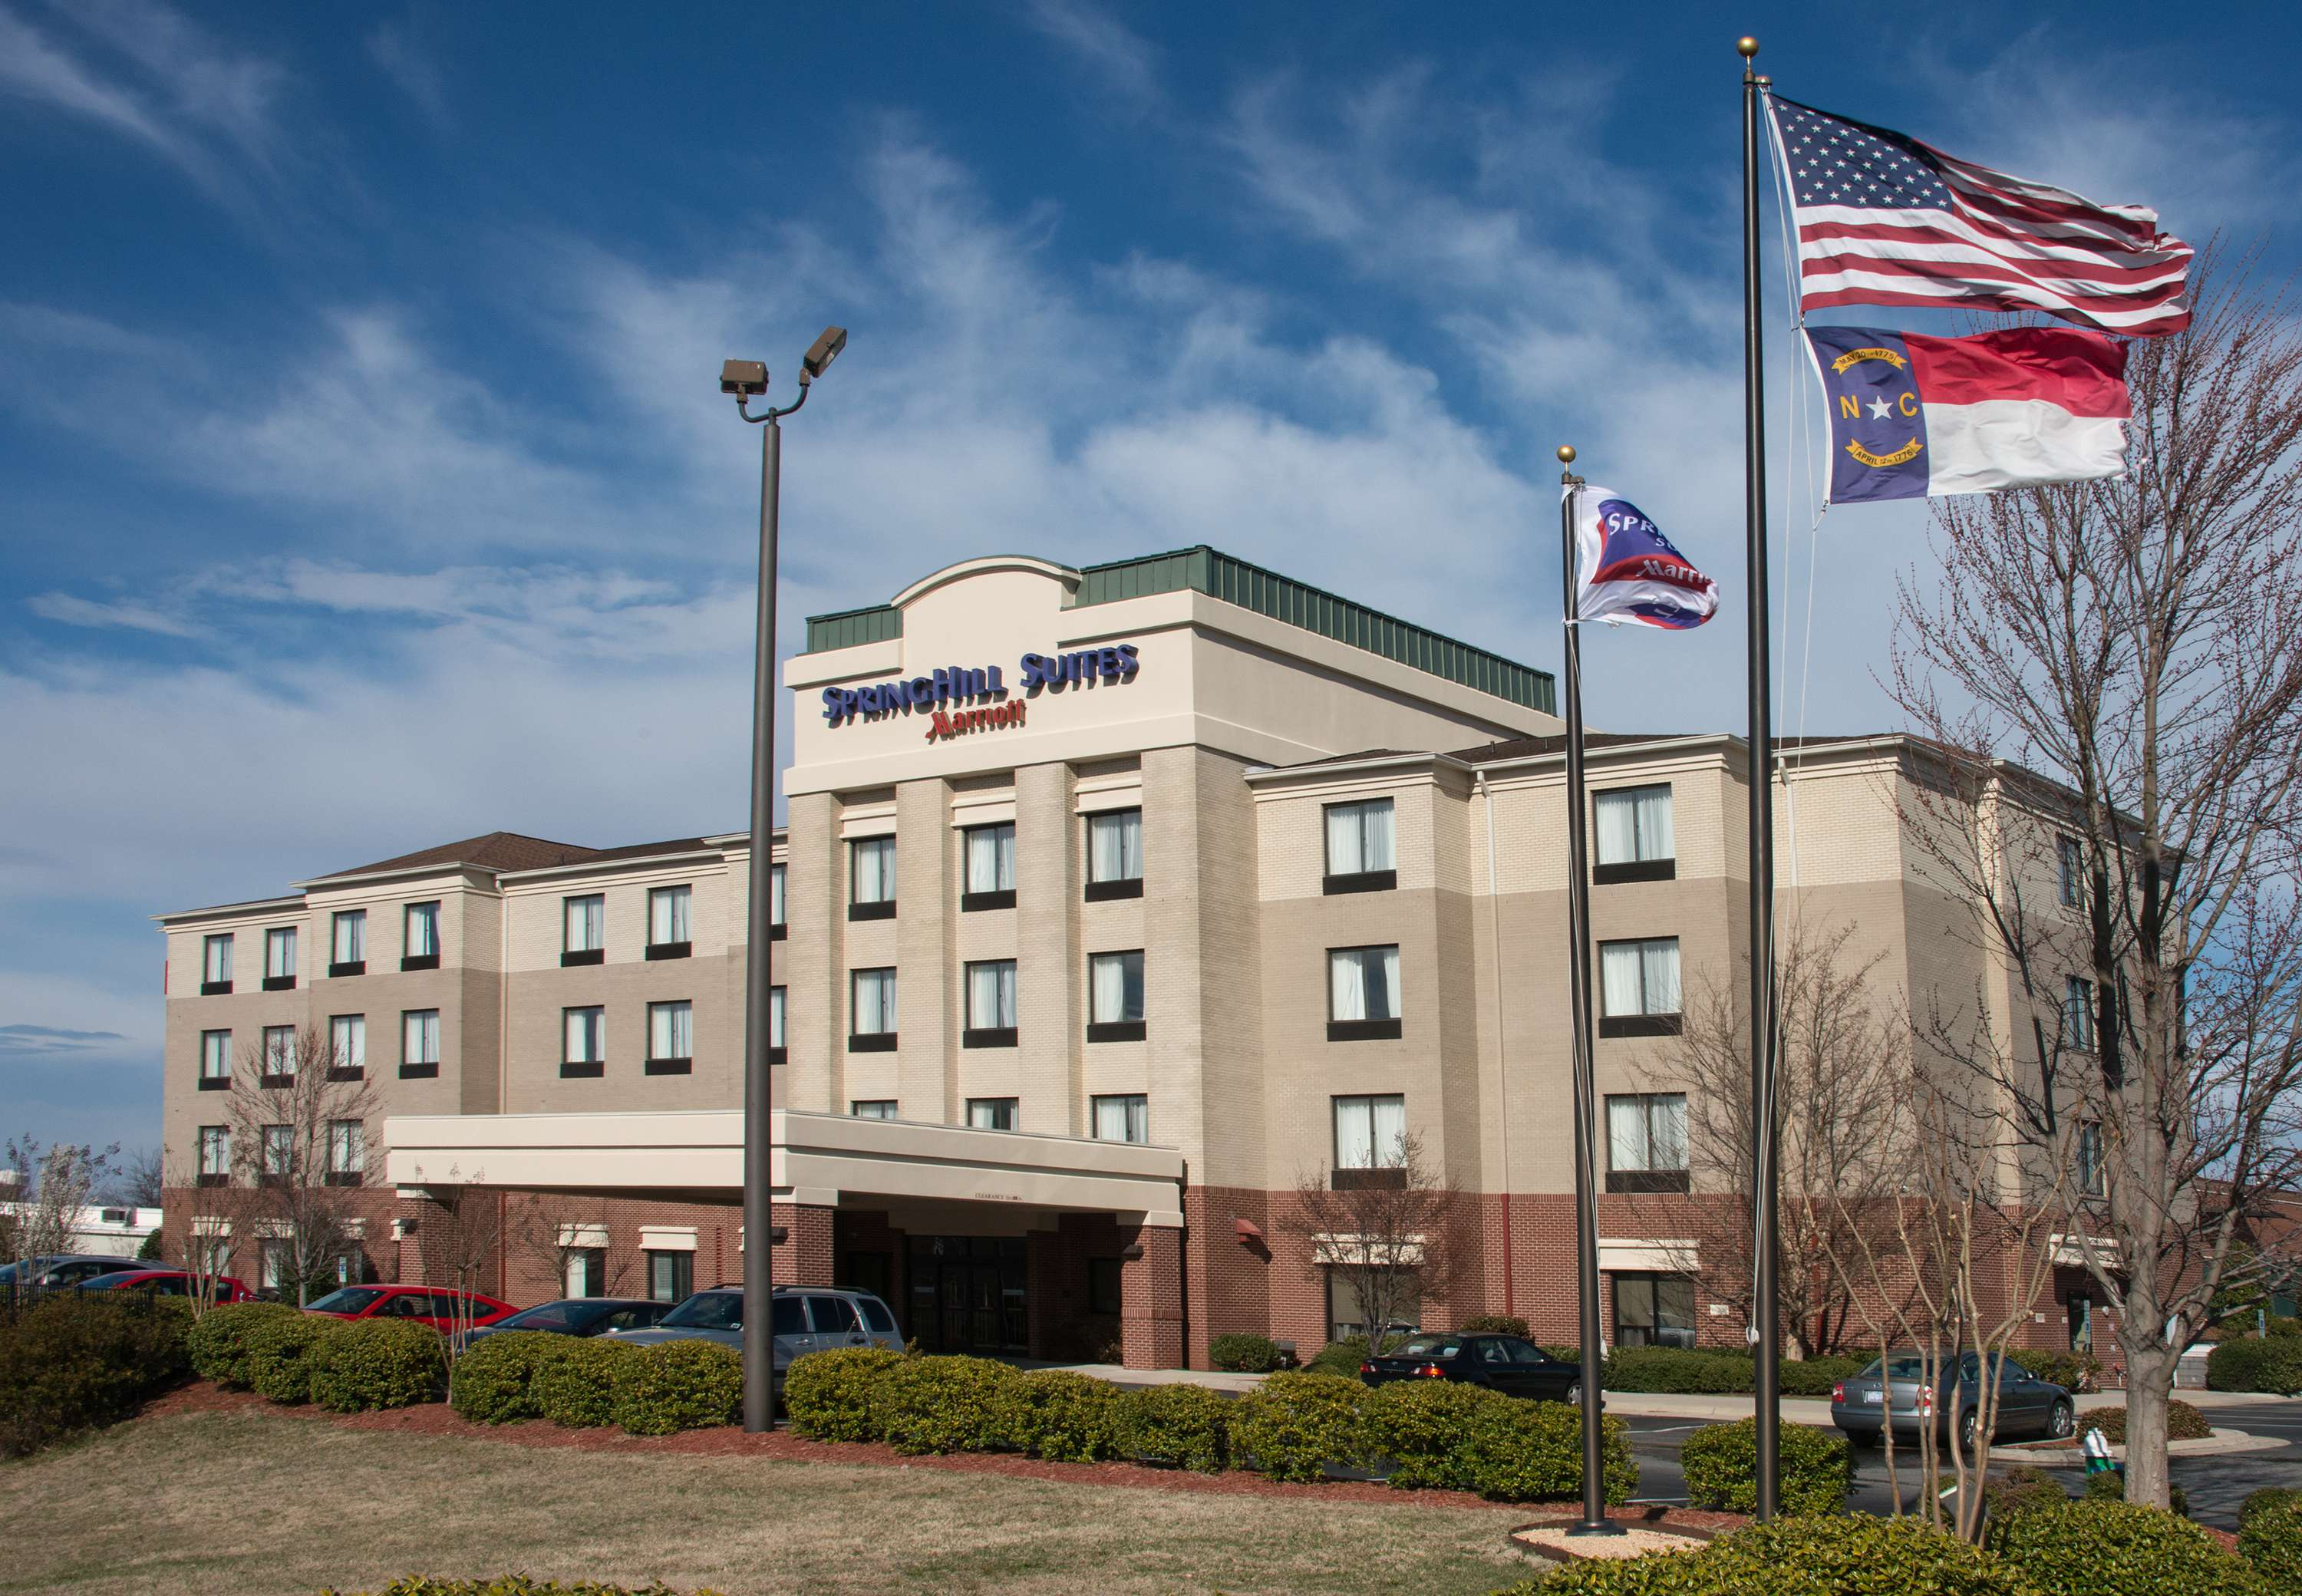 SpringHill Suites by Marriott Greensboro image 10